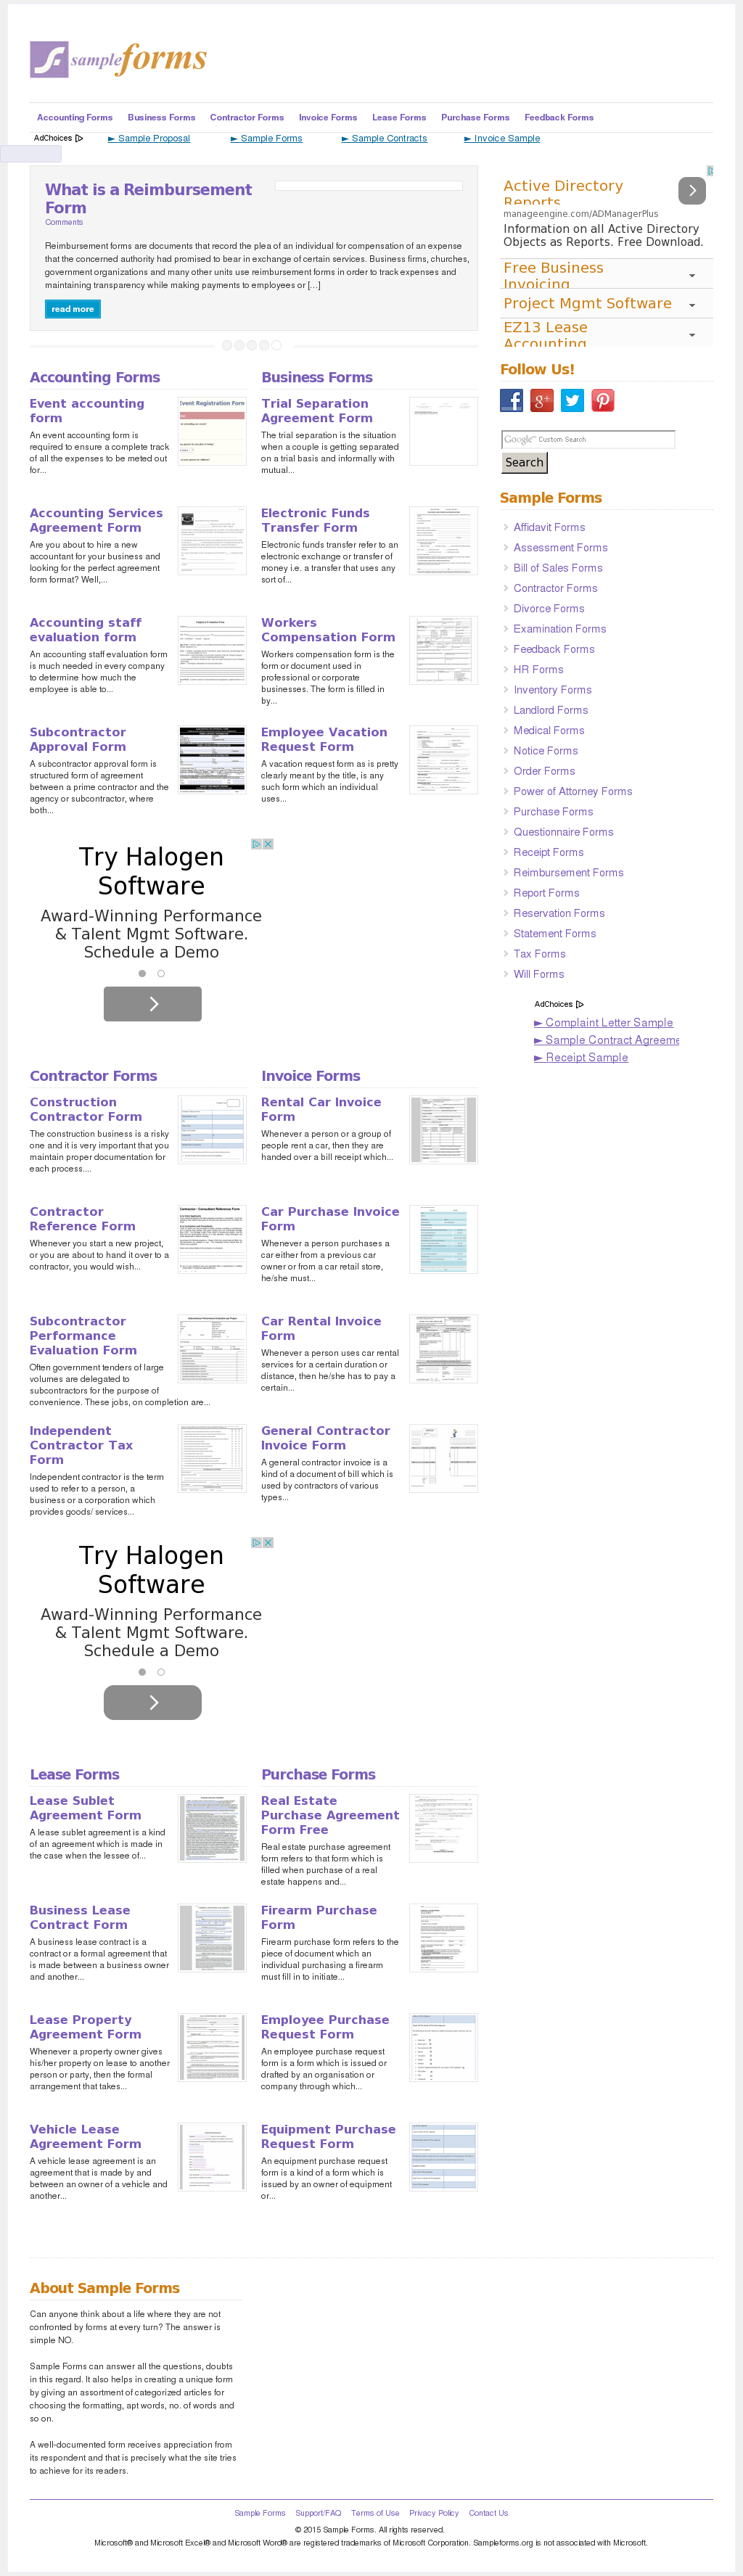 Sample Forms Competitors, Revenue and Employees - Owler Company Profile